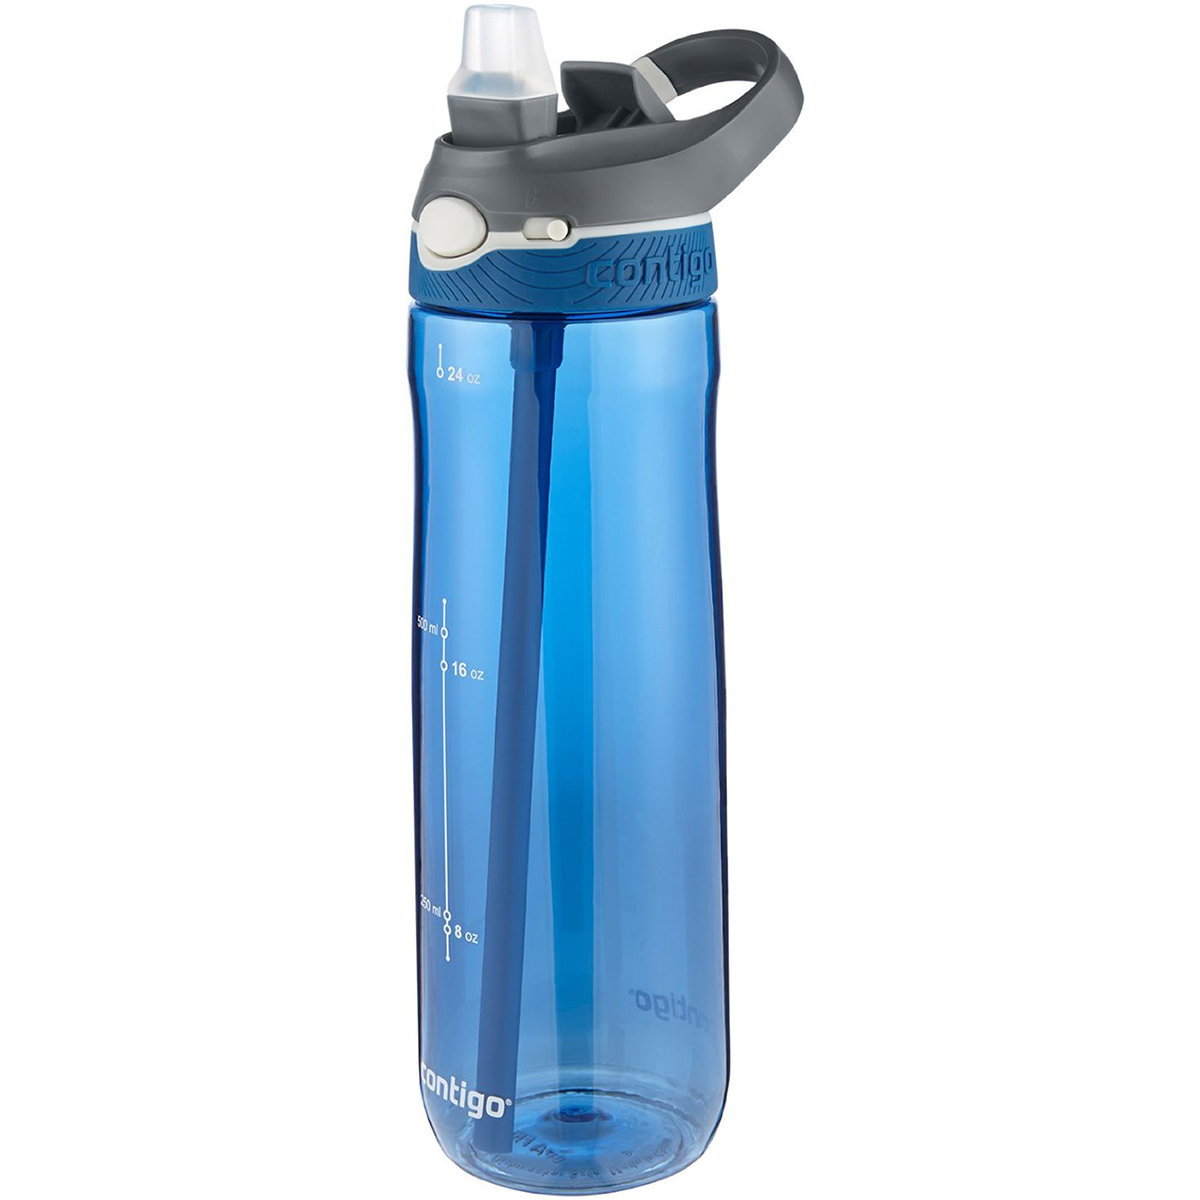 Contigo-24-oz-Ashland-Autospout-Water-Bottle Indexbild 10